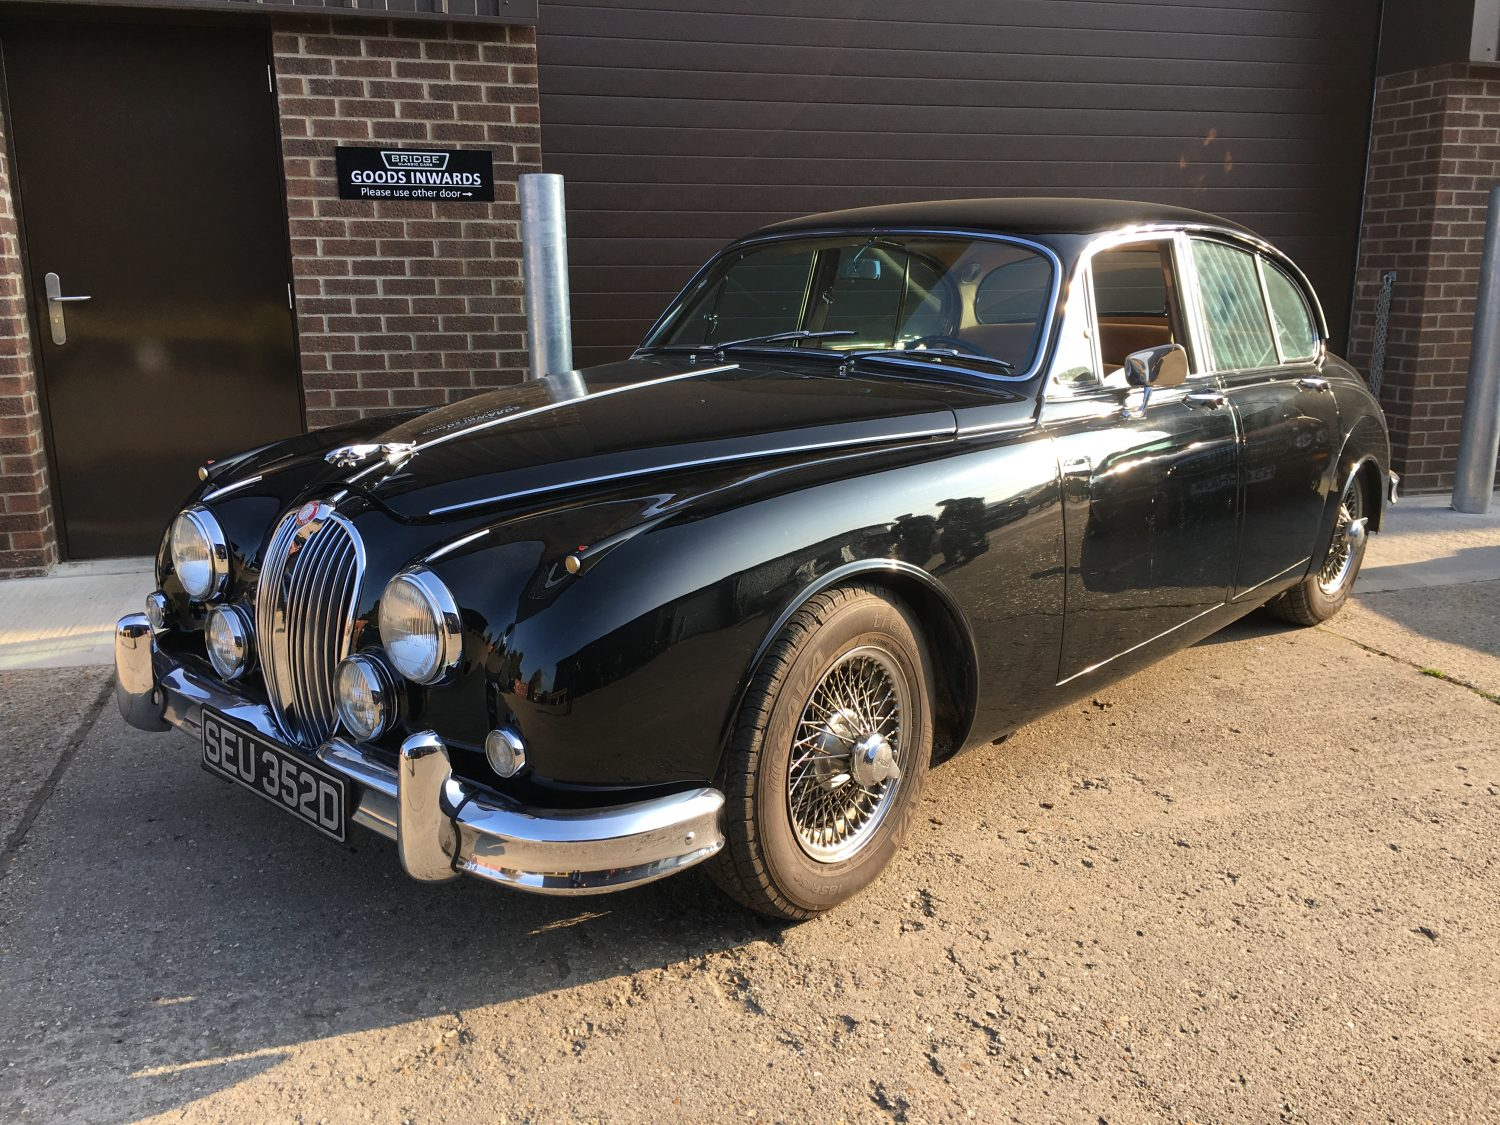 Running issues on our 1966 Jaguar MkII